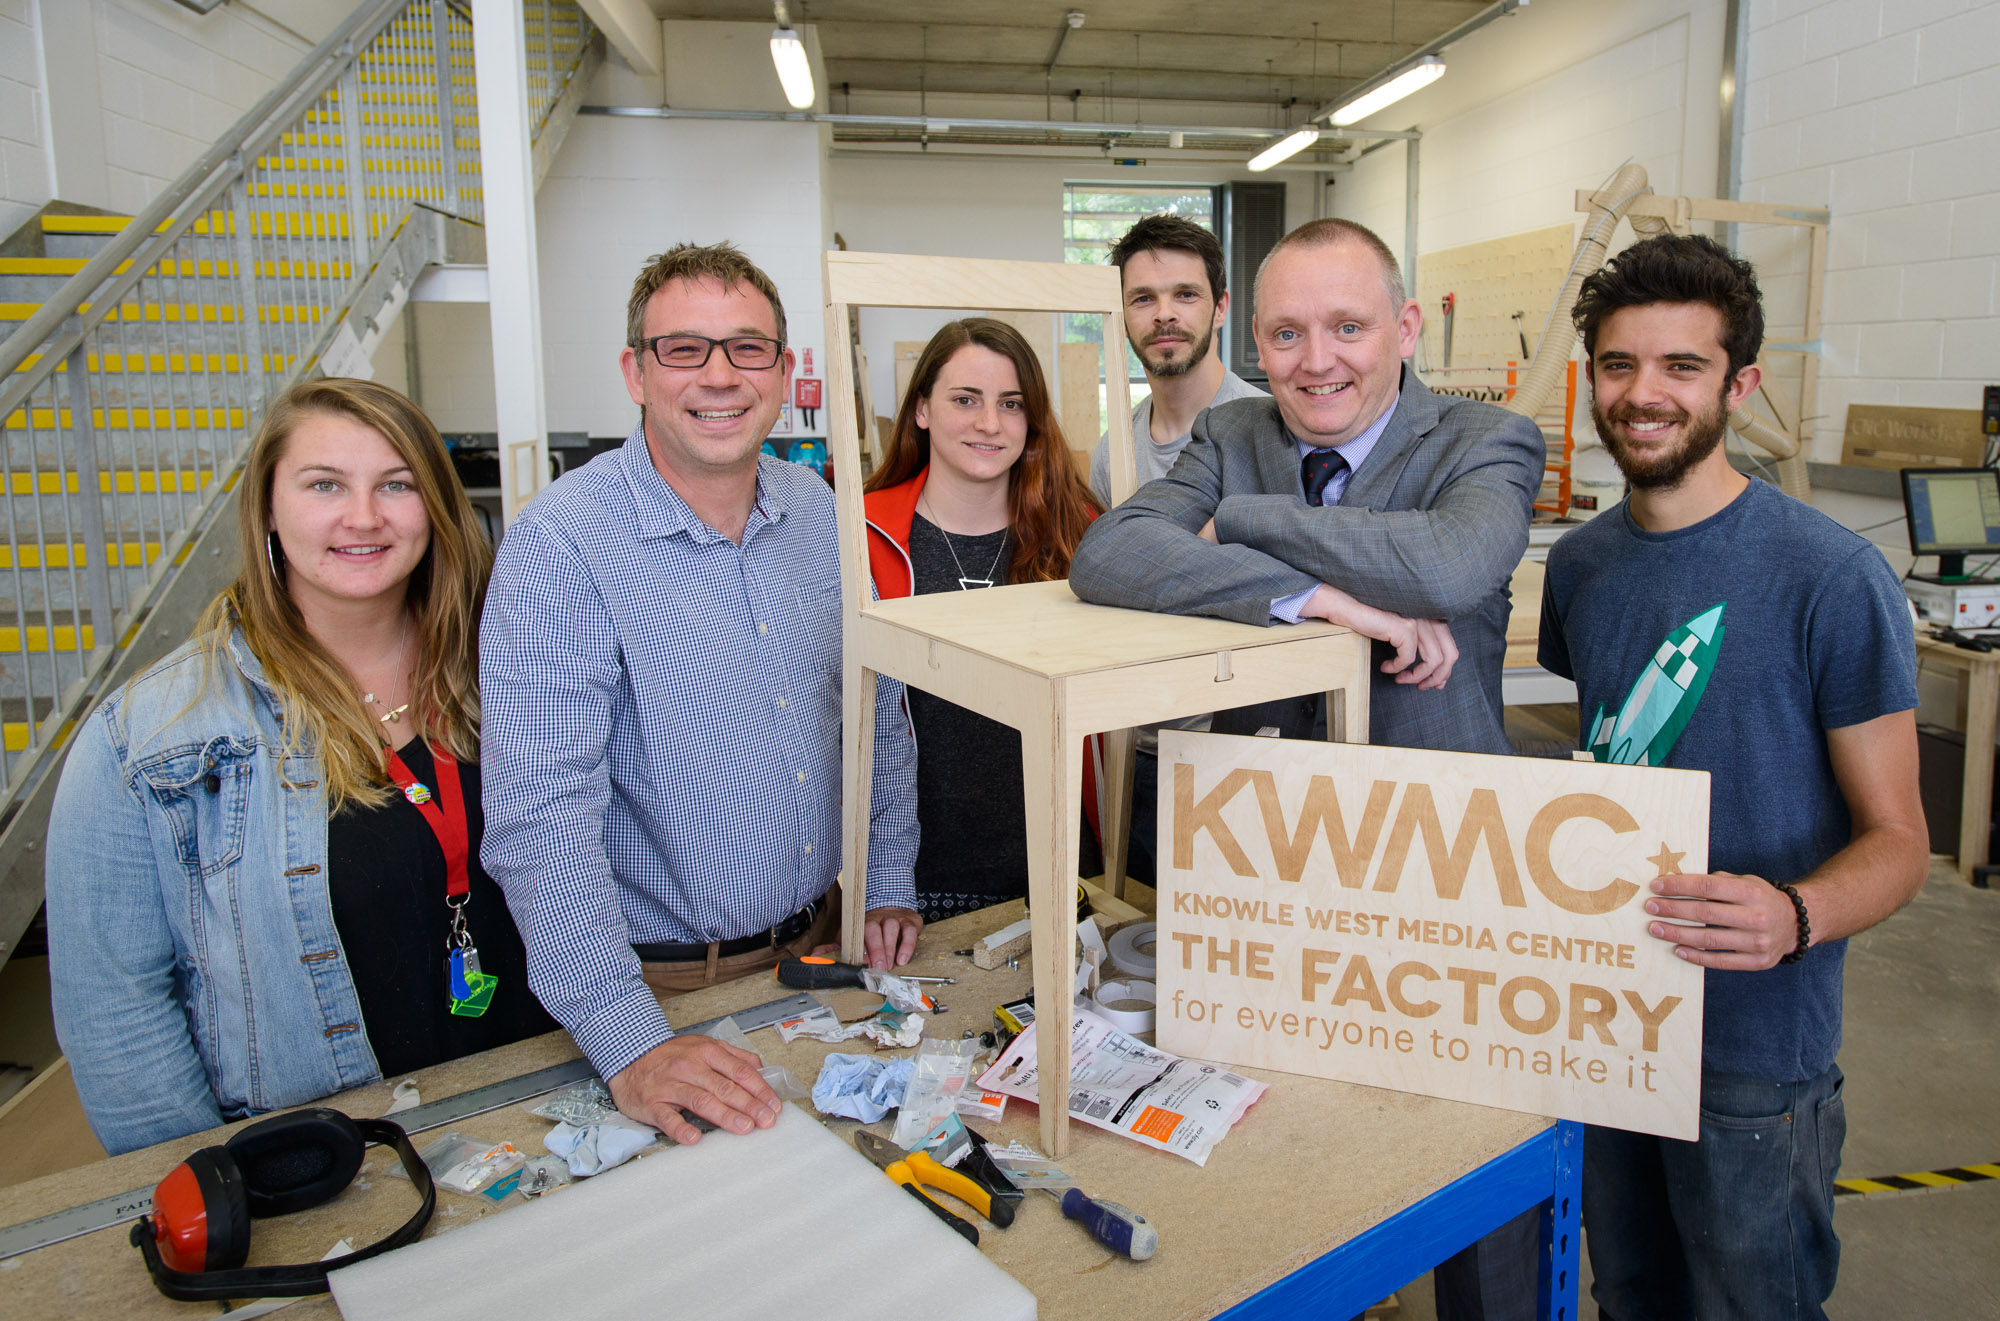 NatWest skills fund award for Knowle West Media Centre